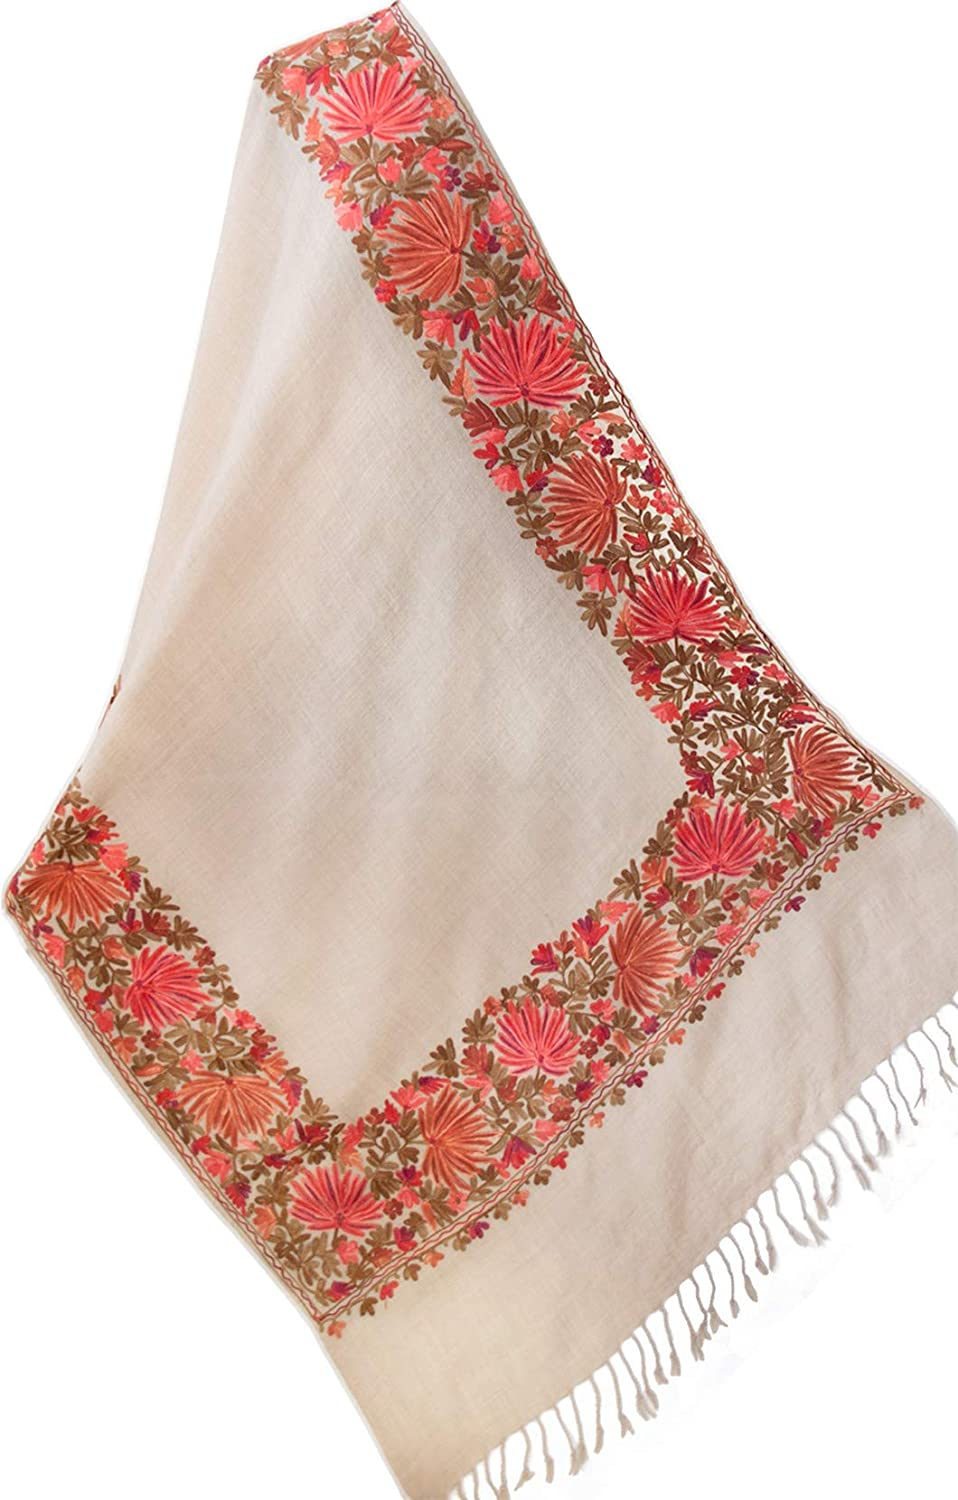 Beige Floral Embroidered Shawl Wool Wrap 84  x 29  Shades of Red & Brown